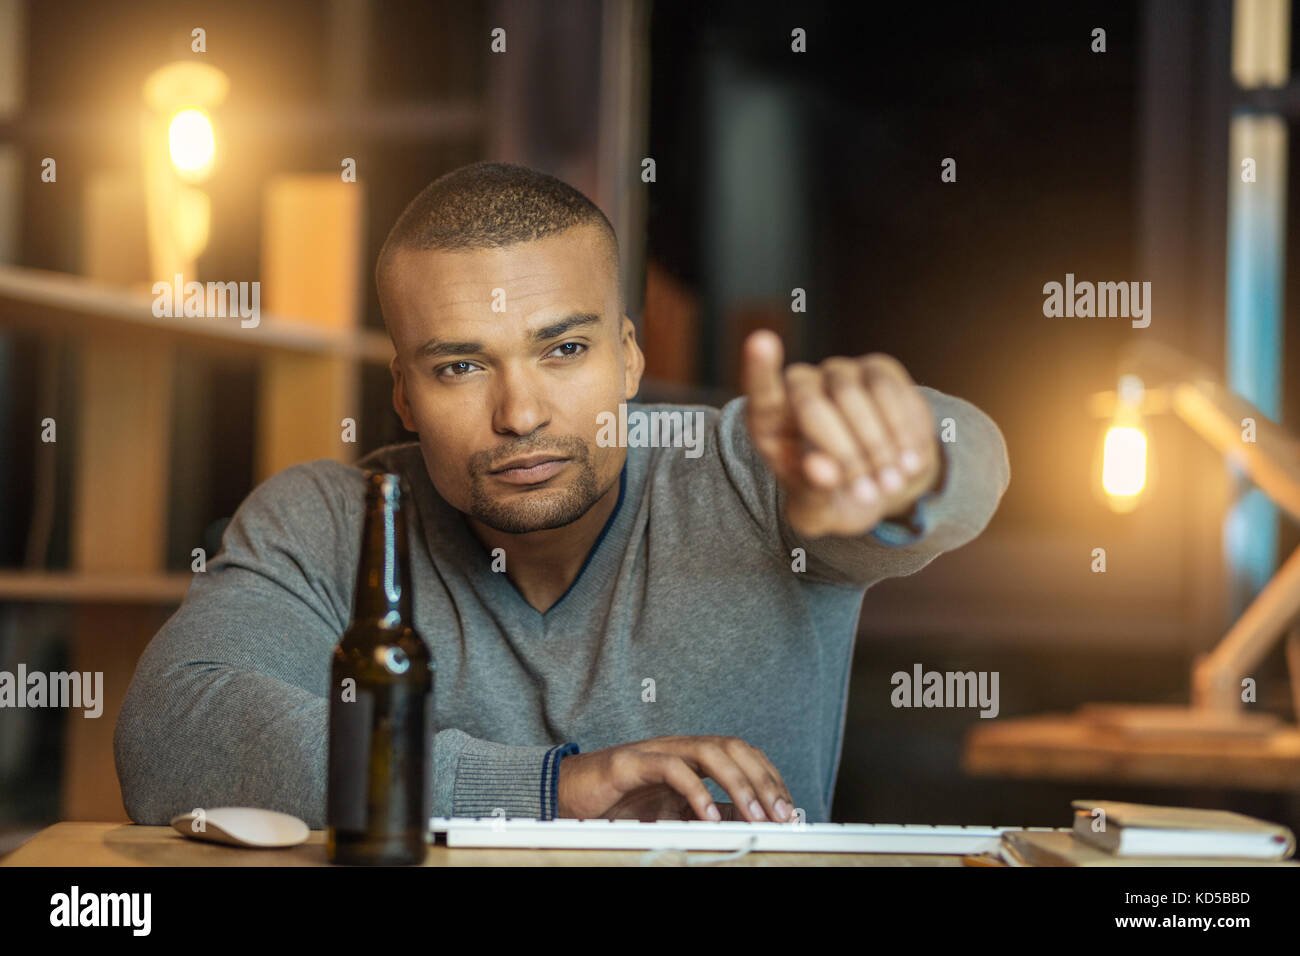 Concentrated man pointing at screen - Stock Image